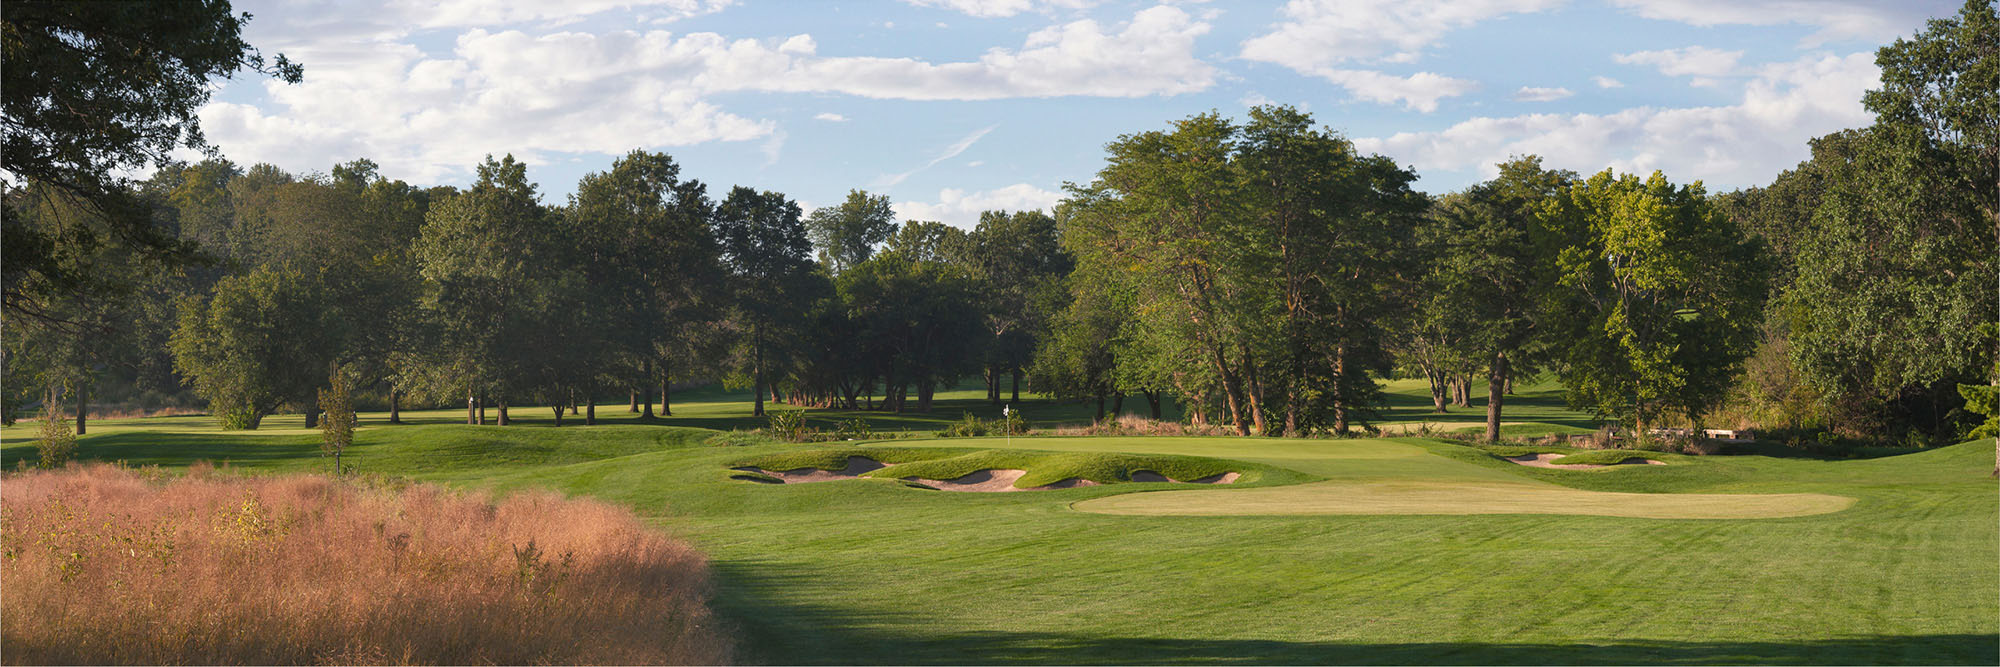 Golf Course Image - Wolf Creek No. 15